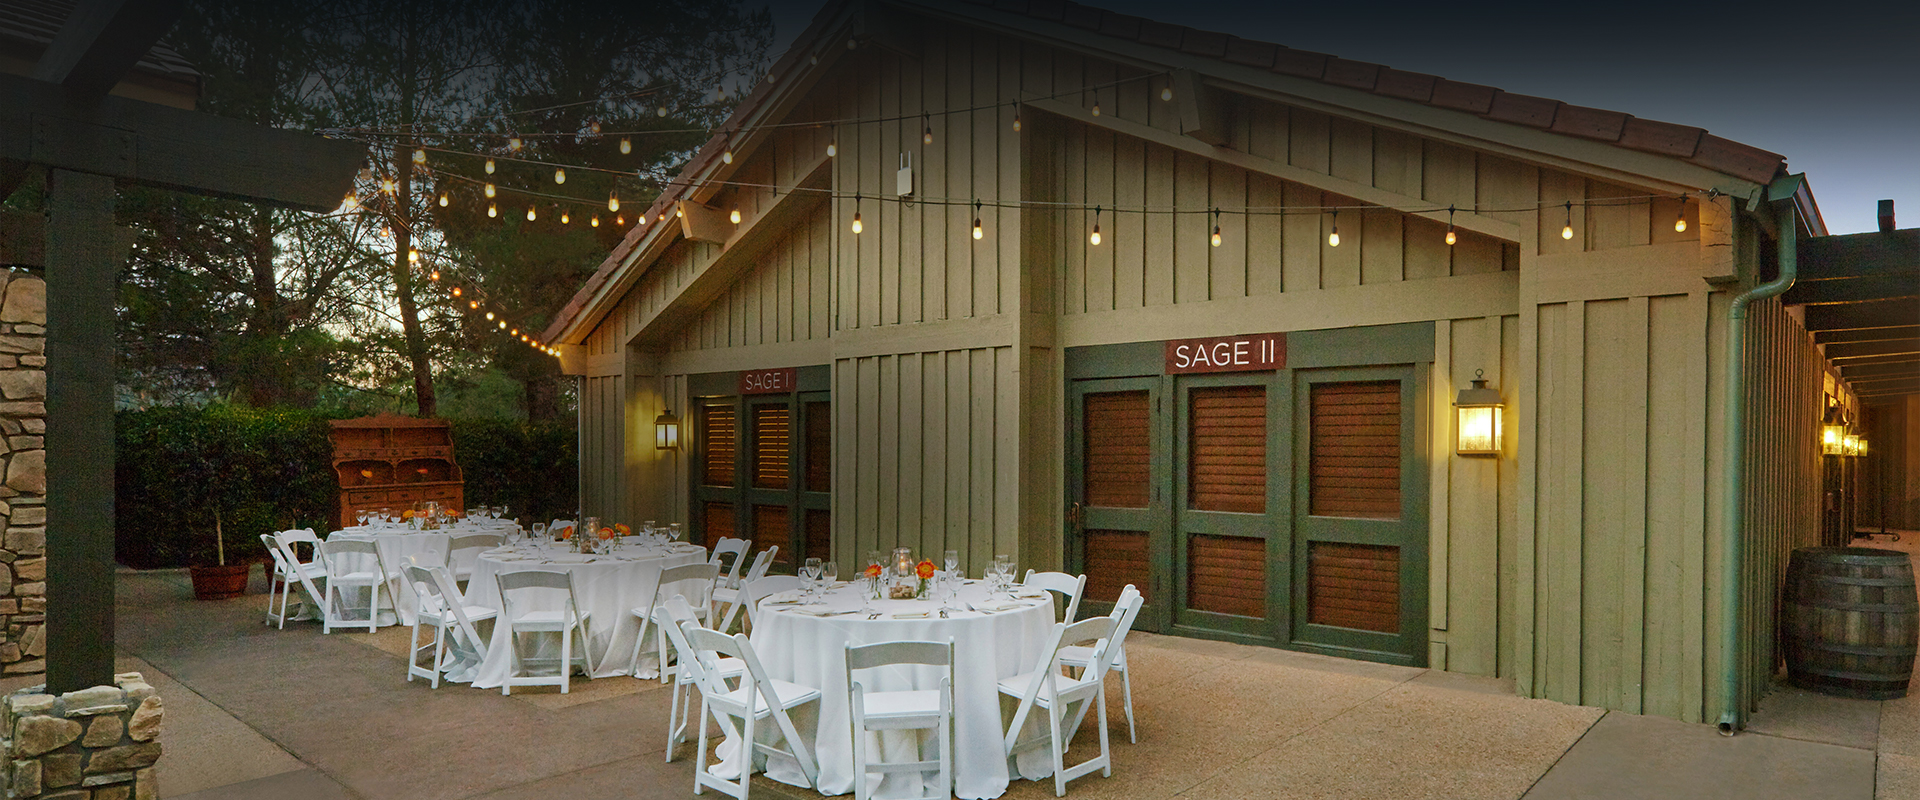 white tables and chairs set up outside a barn with lights hanging down